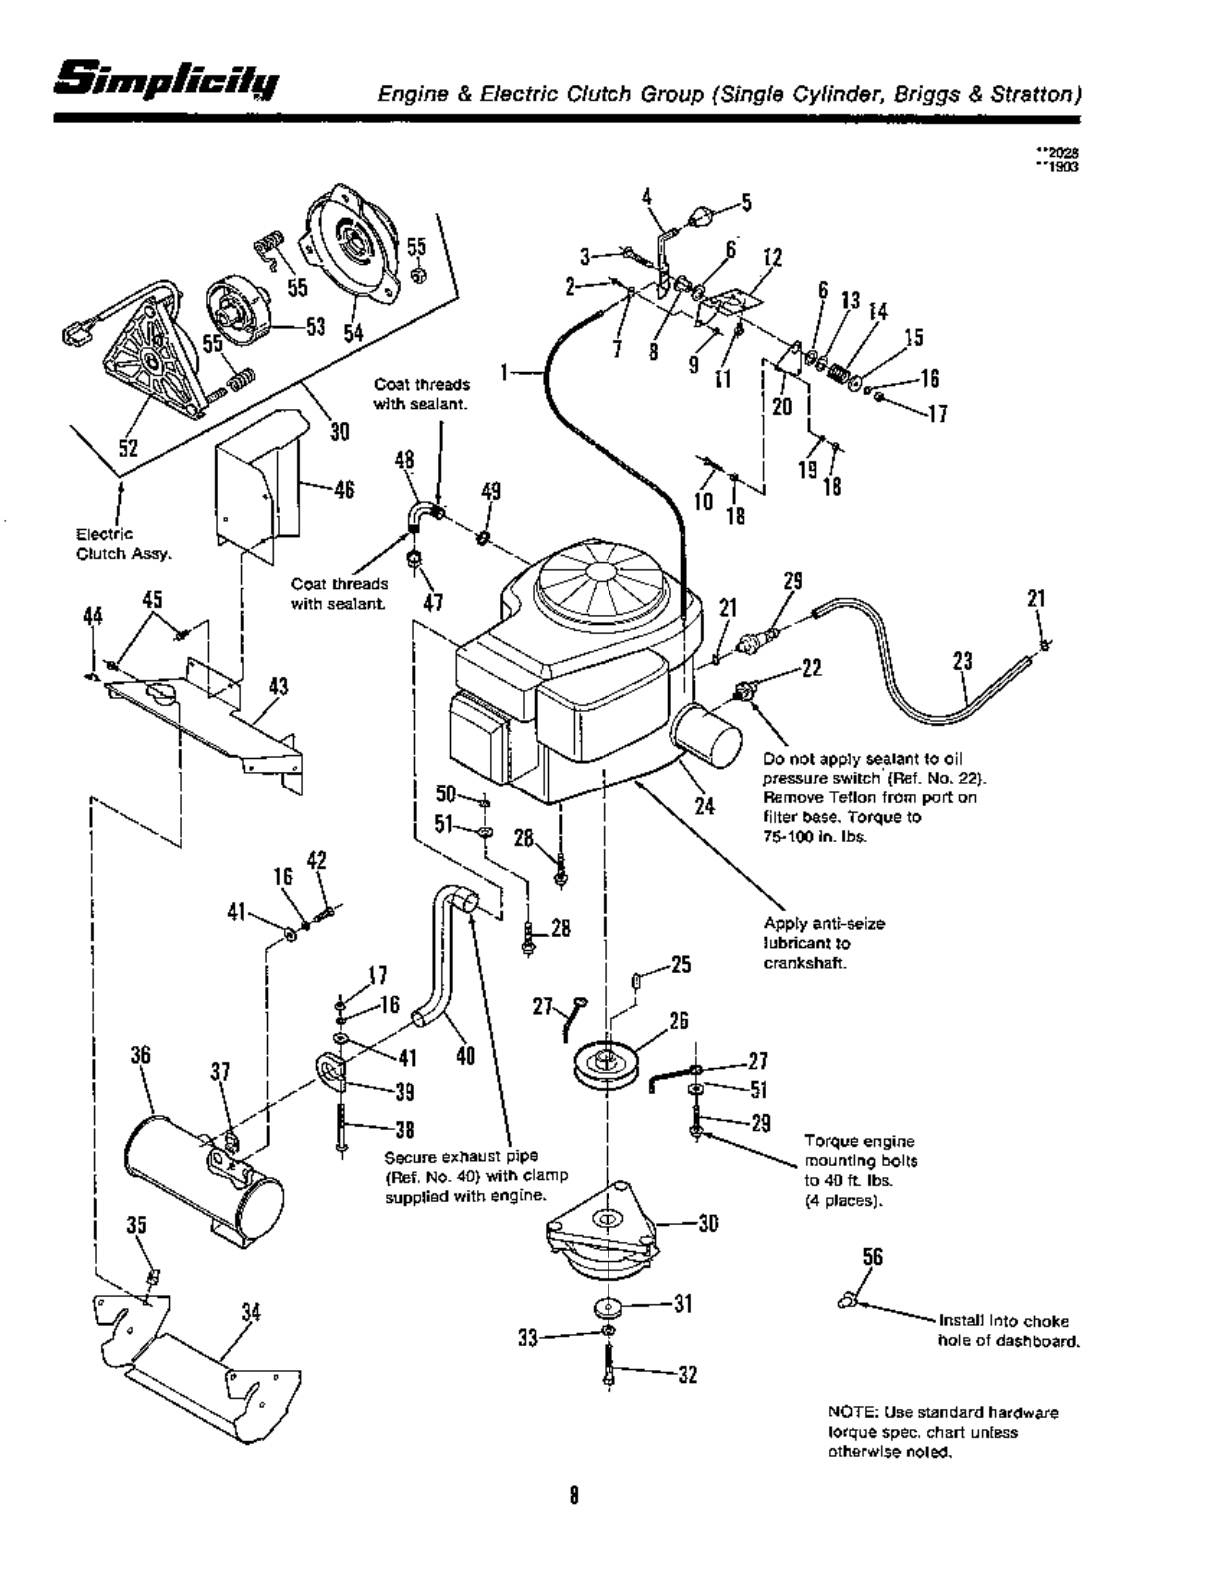 Page 10 of Simplicity Lawn Mower 12.5 LTH User Guide